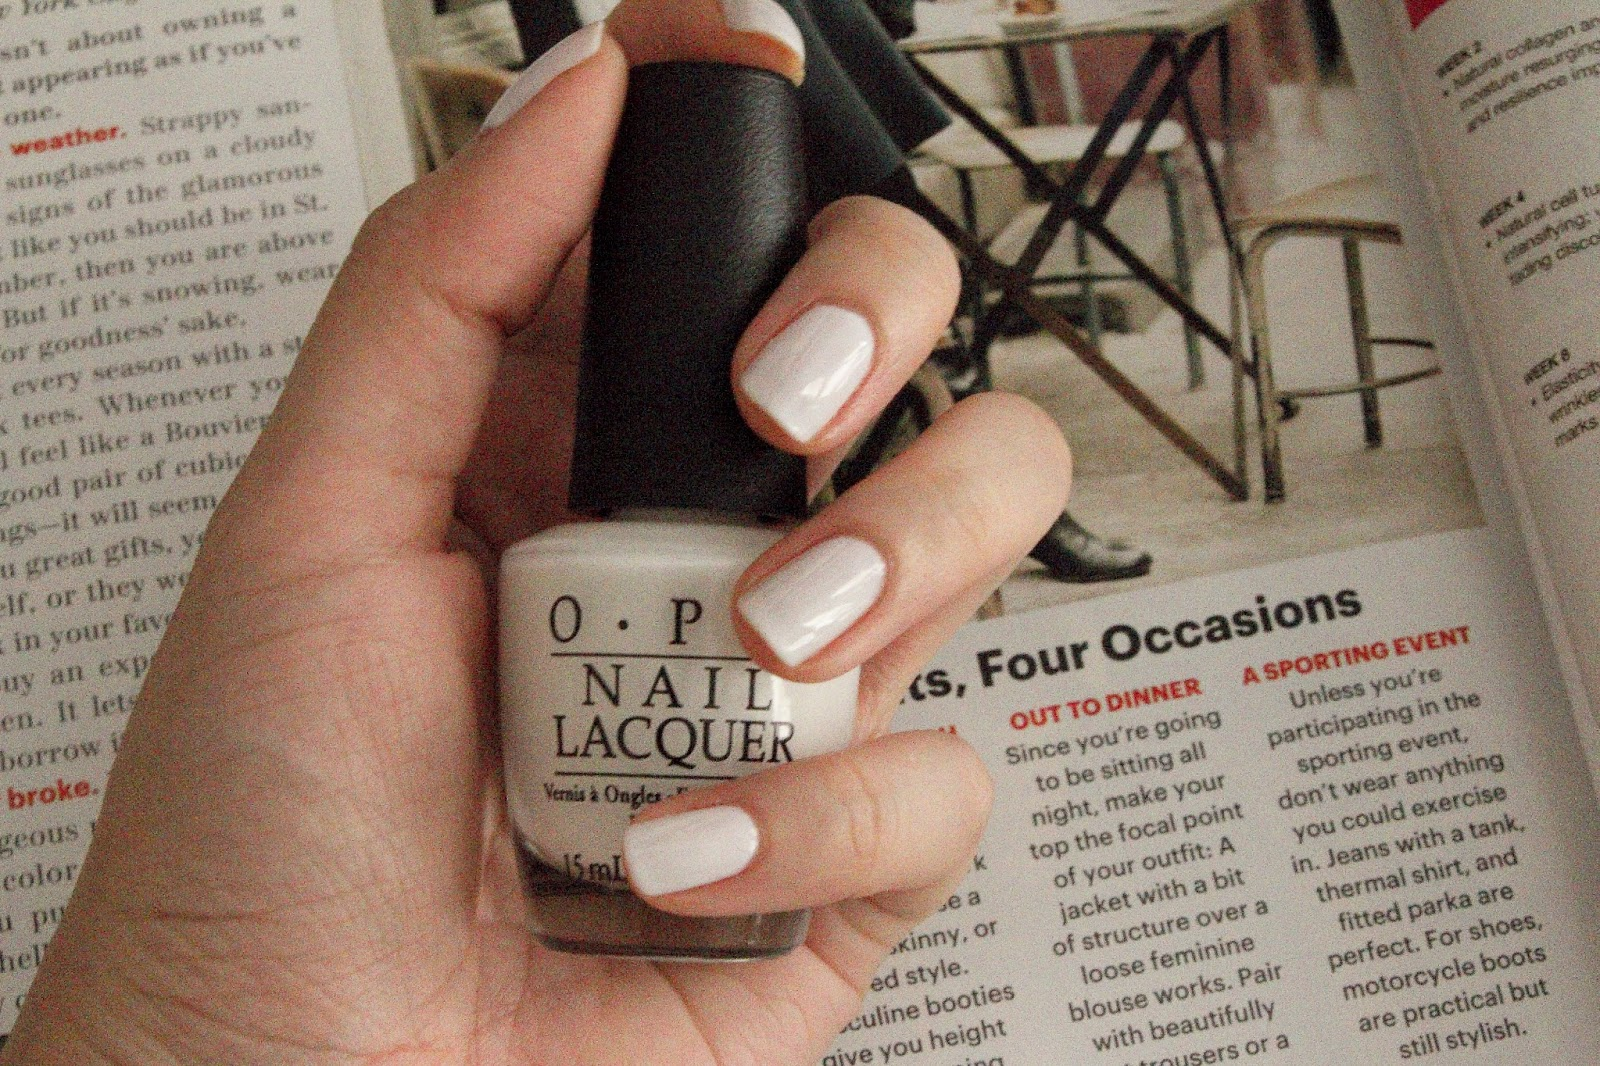 Nails of the Week: Funny Bunny By O.P.I - Pearls Like Me